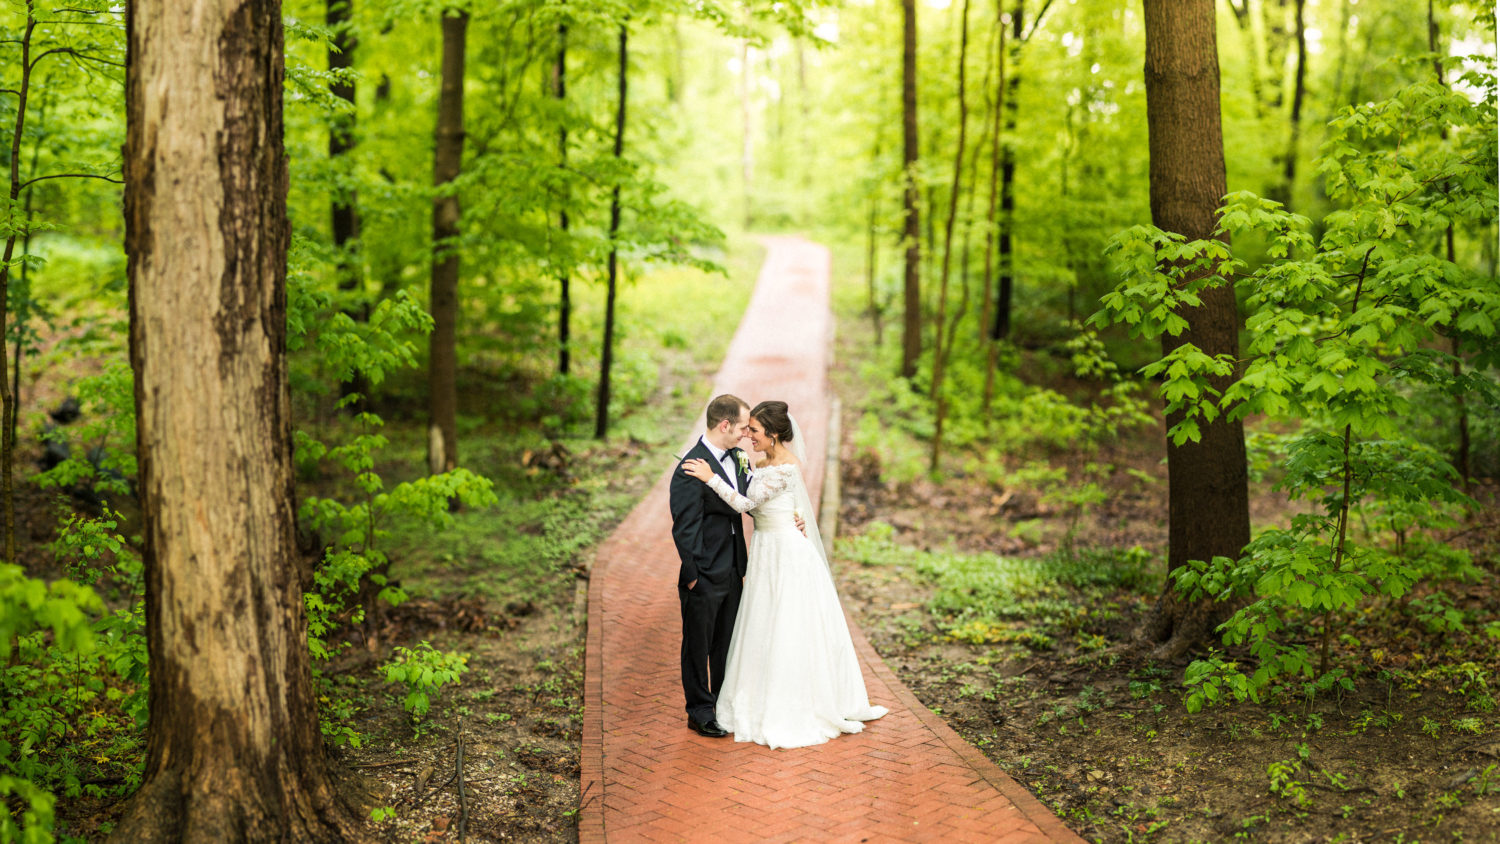 Lovely wooded wedding photograph